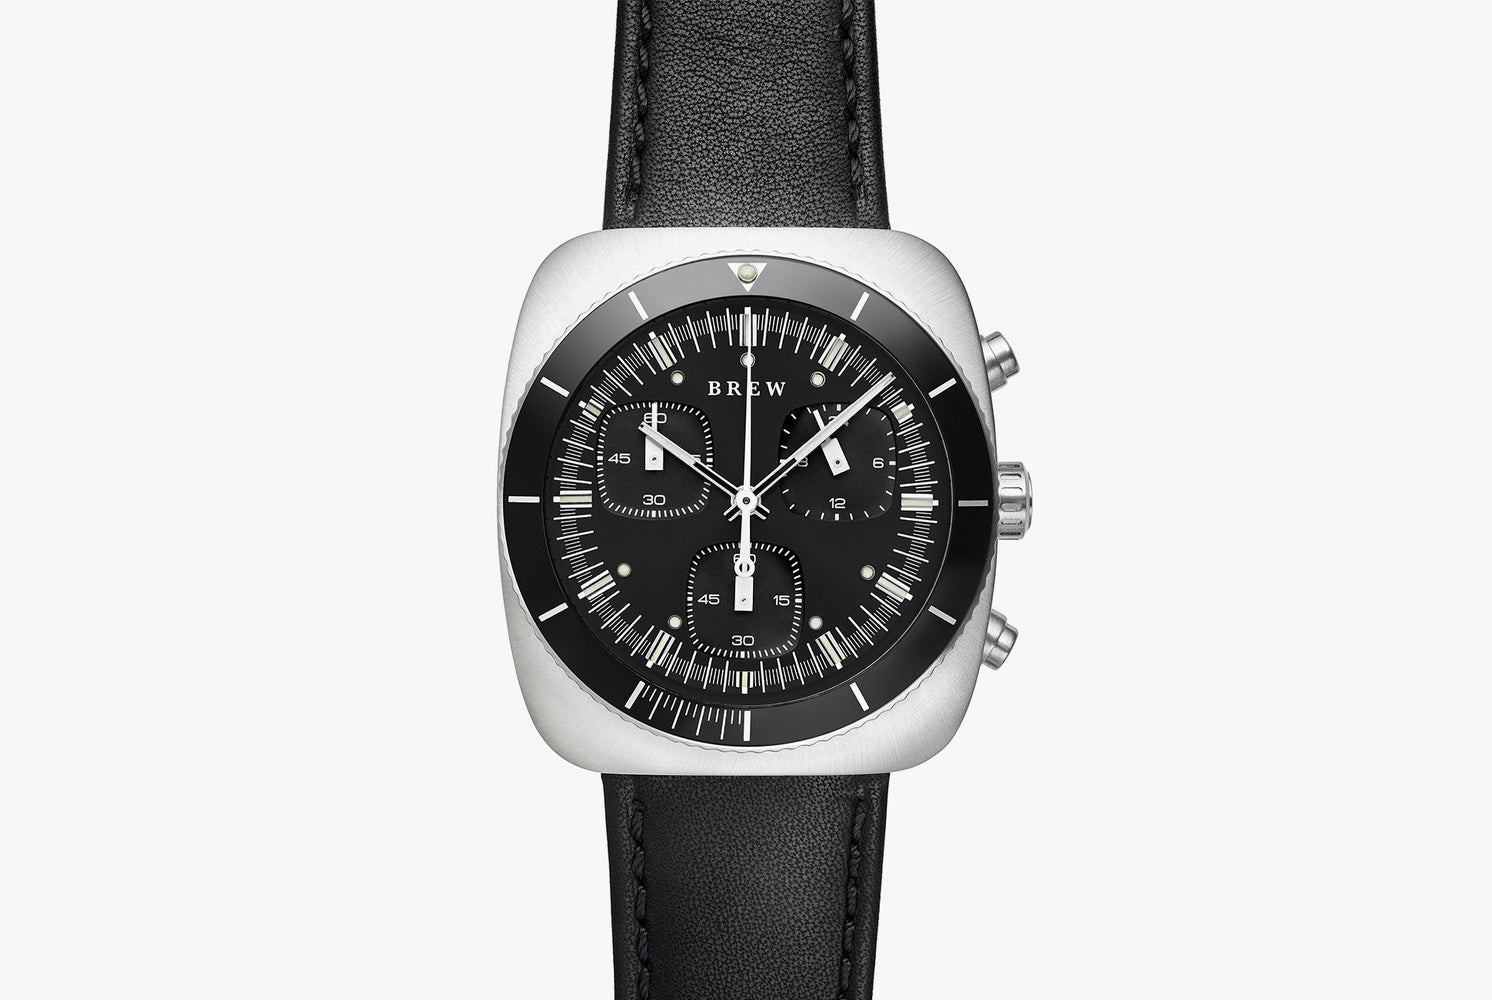 Black Watch - Front View